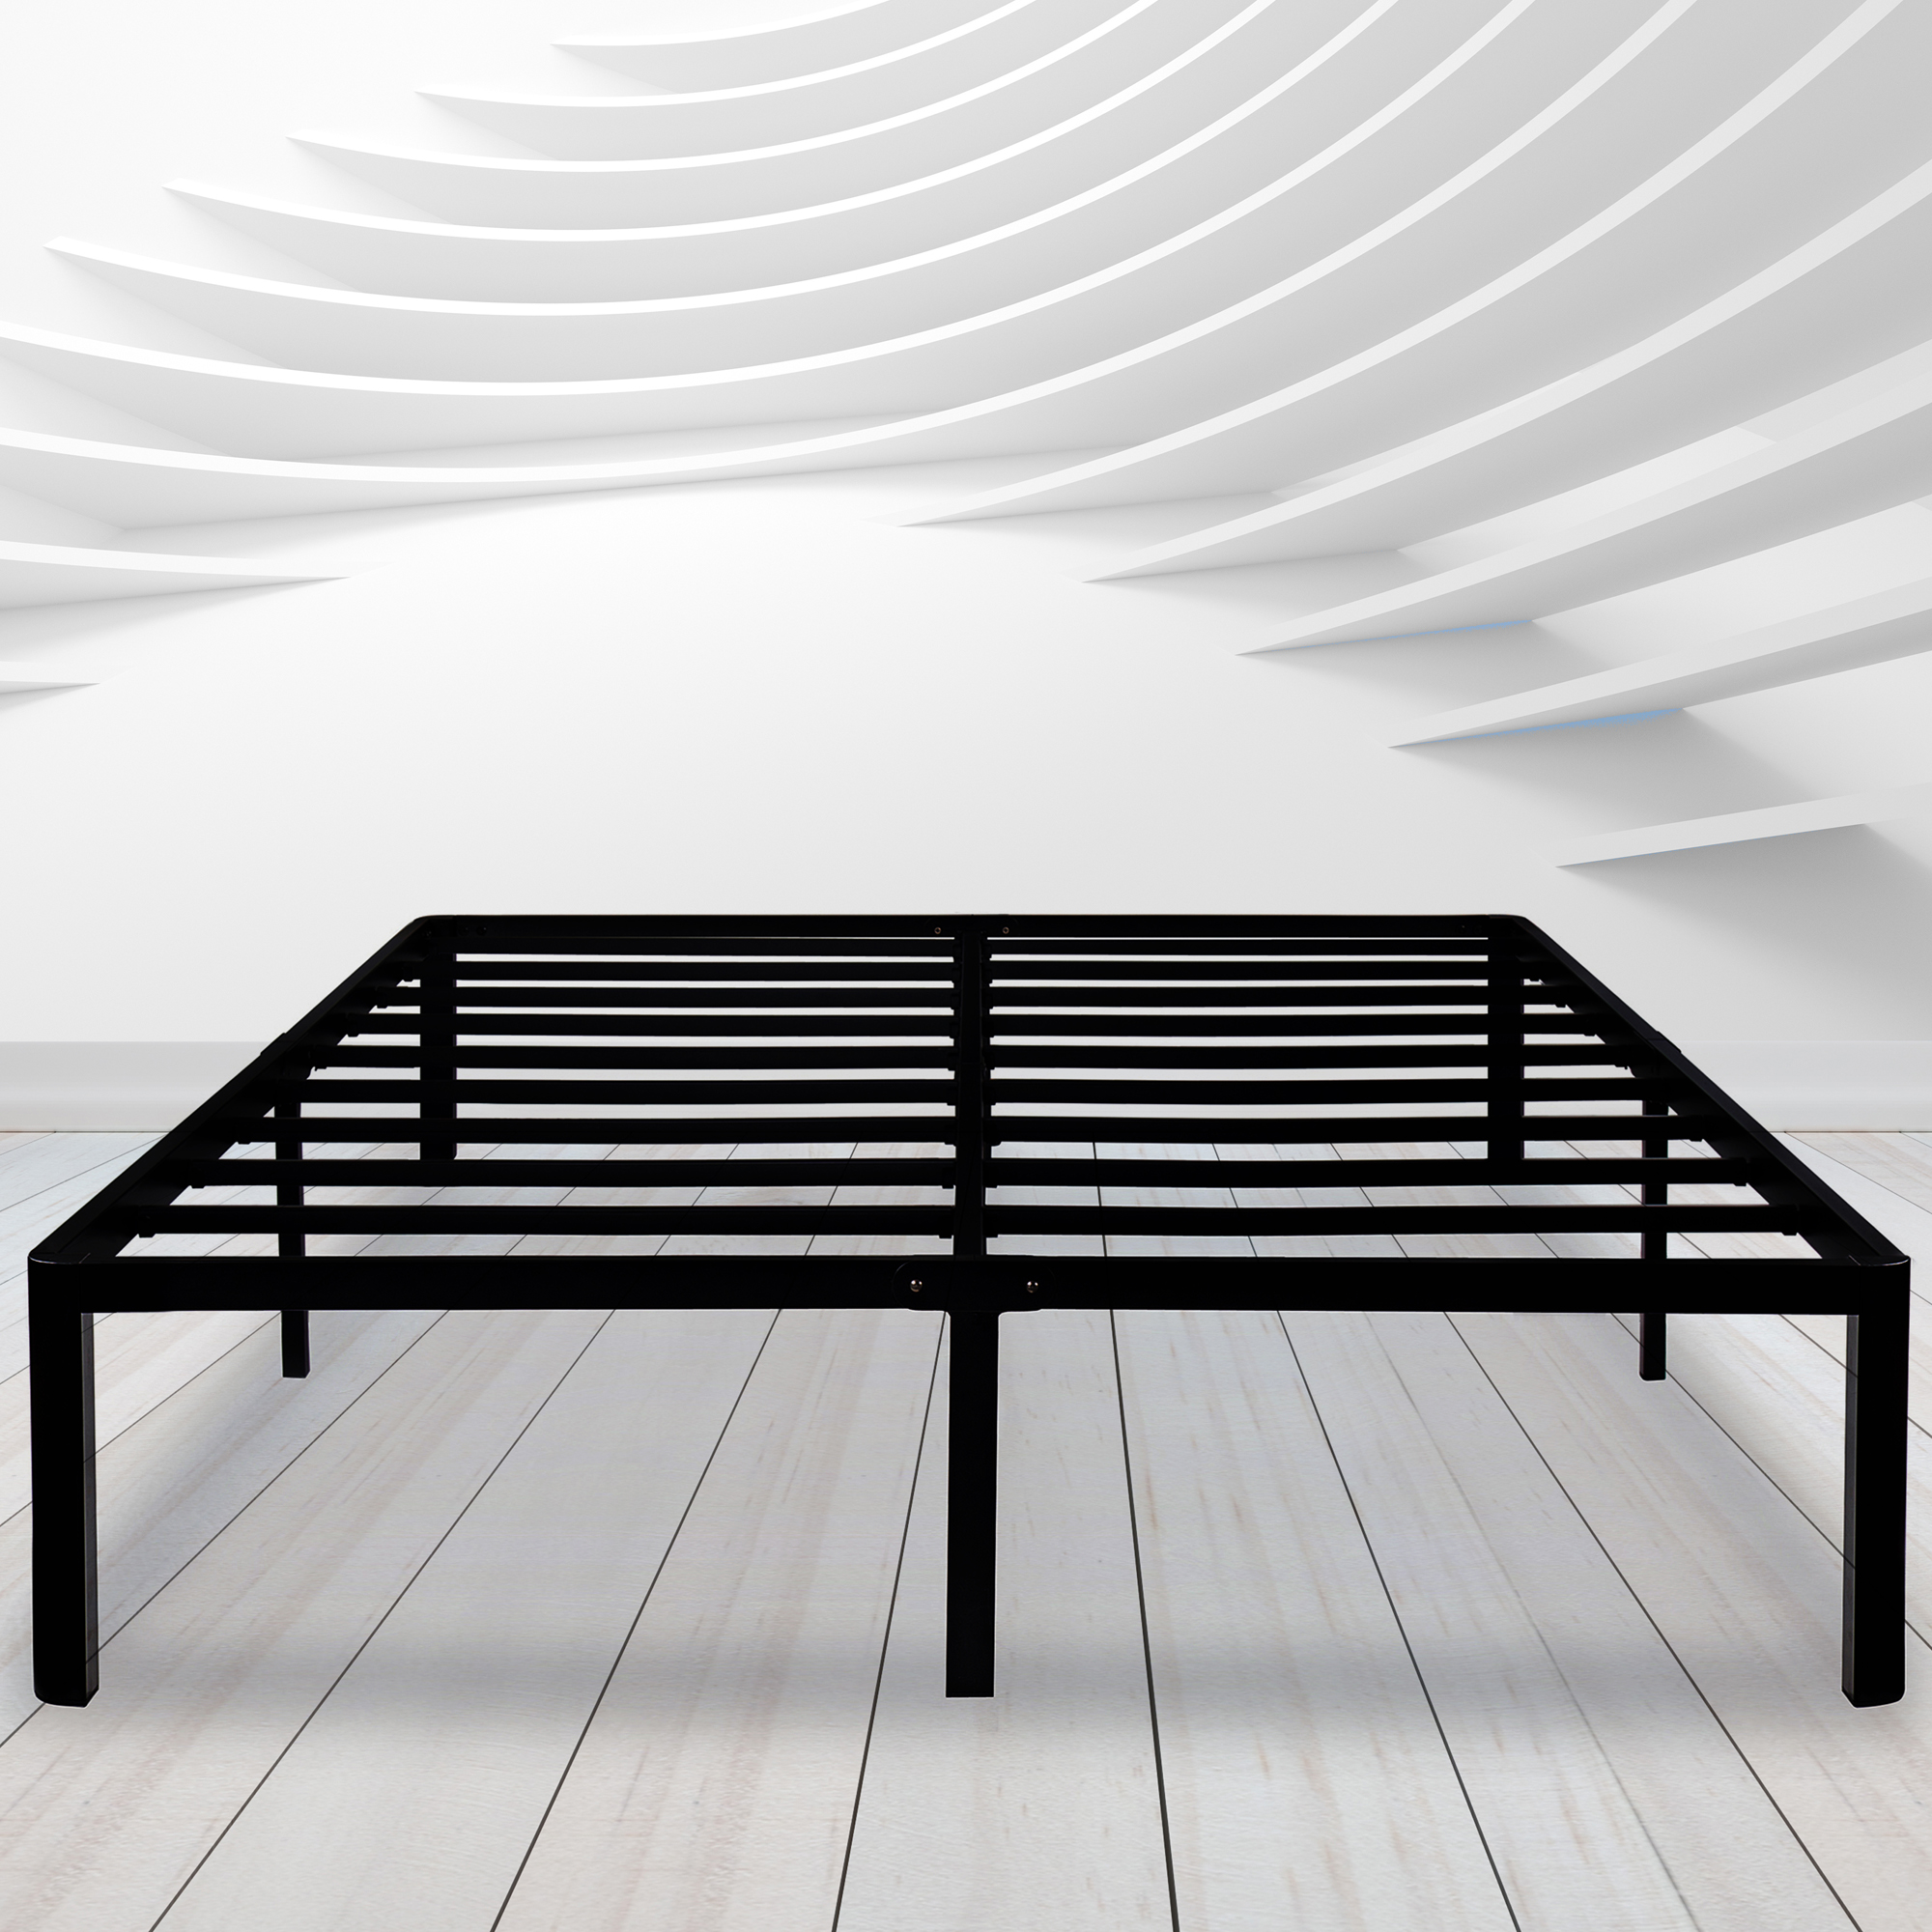 GranRest 14'' Round Corner Edge Durable Steel Bed Frame with Non-Slip Structure,Queen